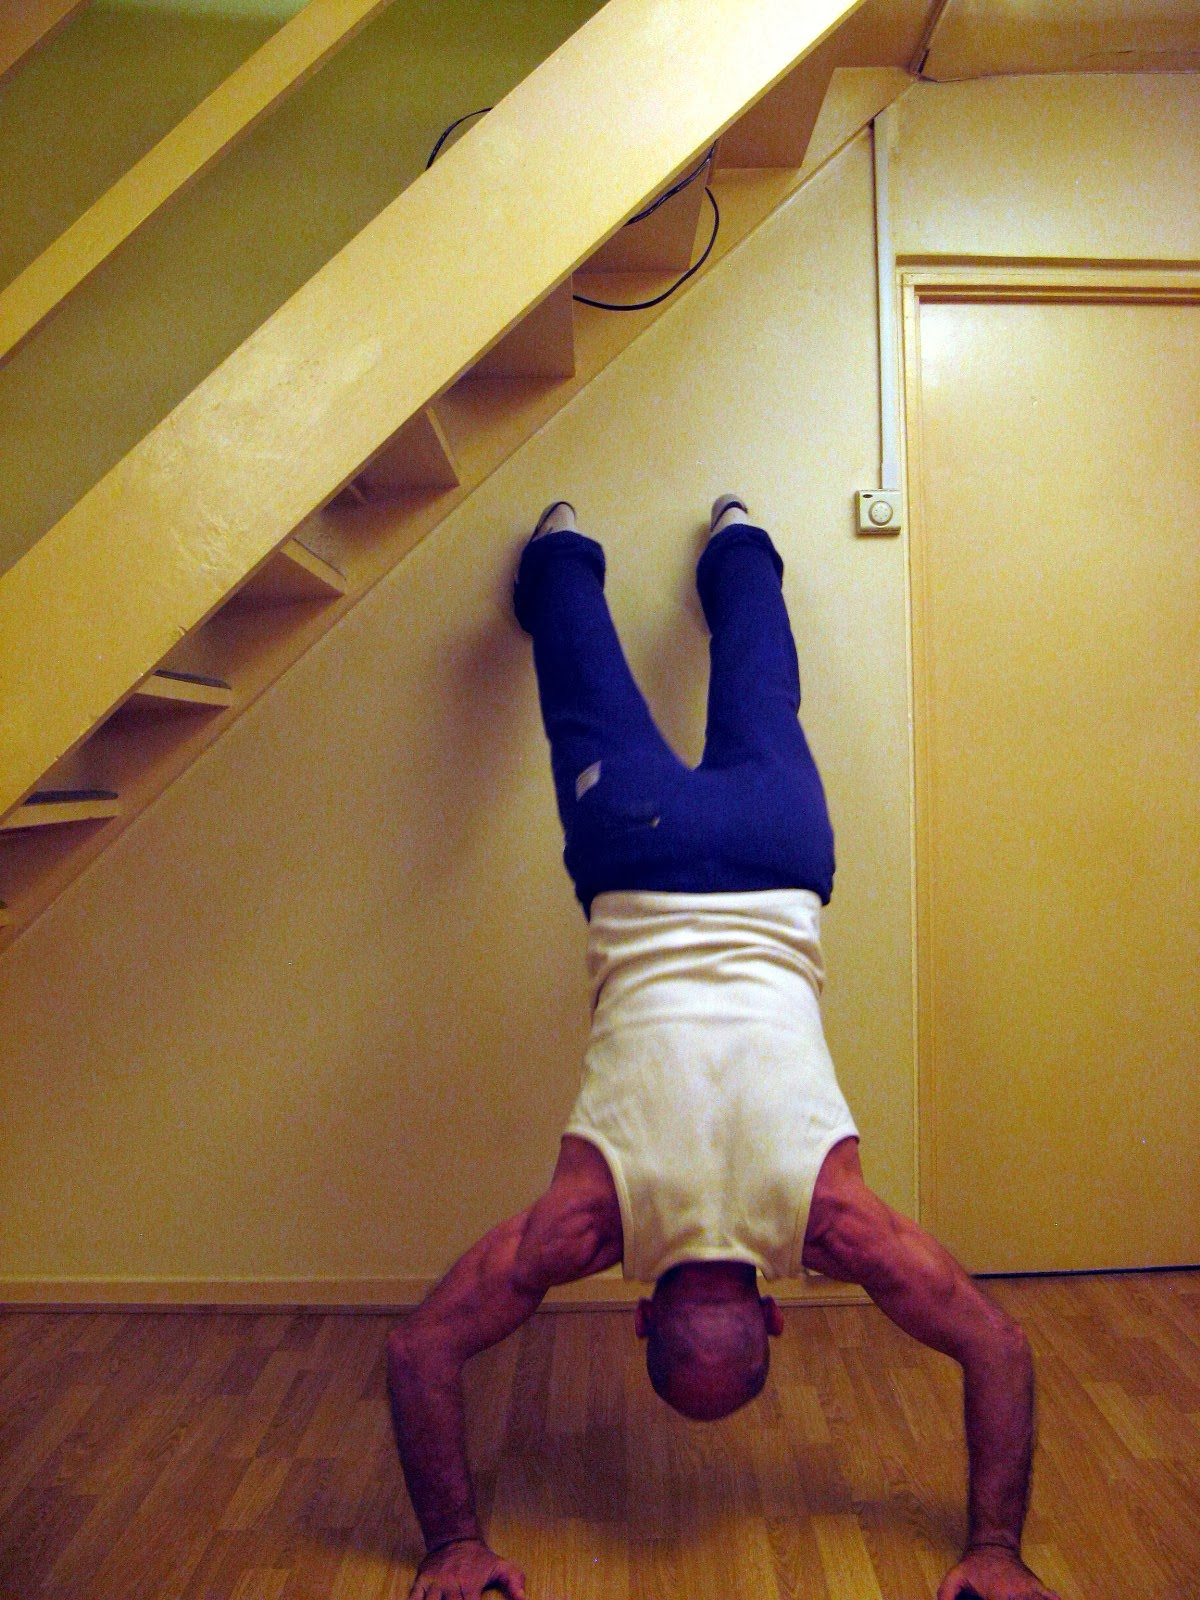 Wall Pushes Wall Bent Waist Handstand Push